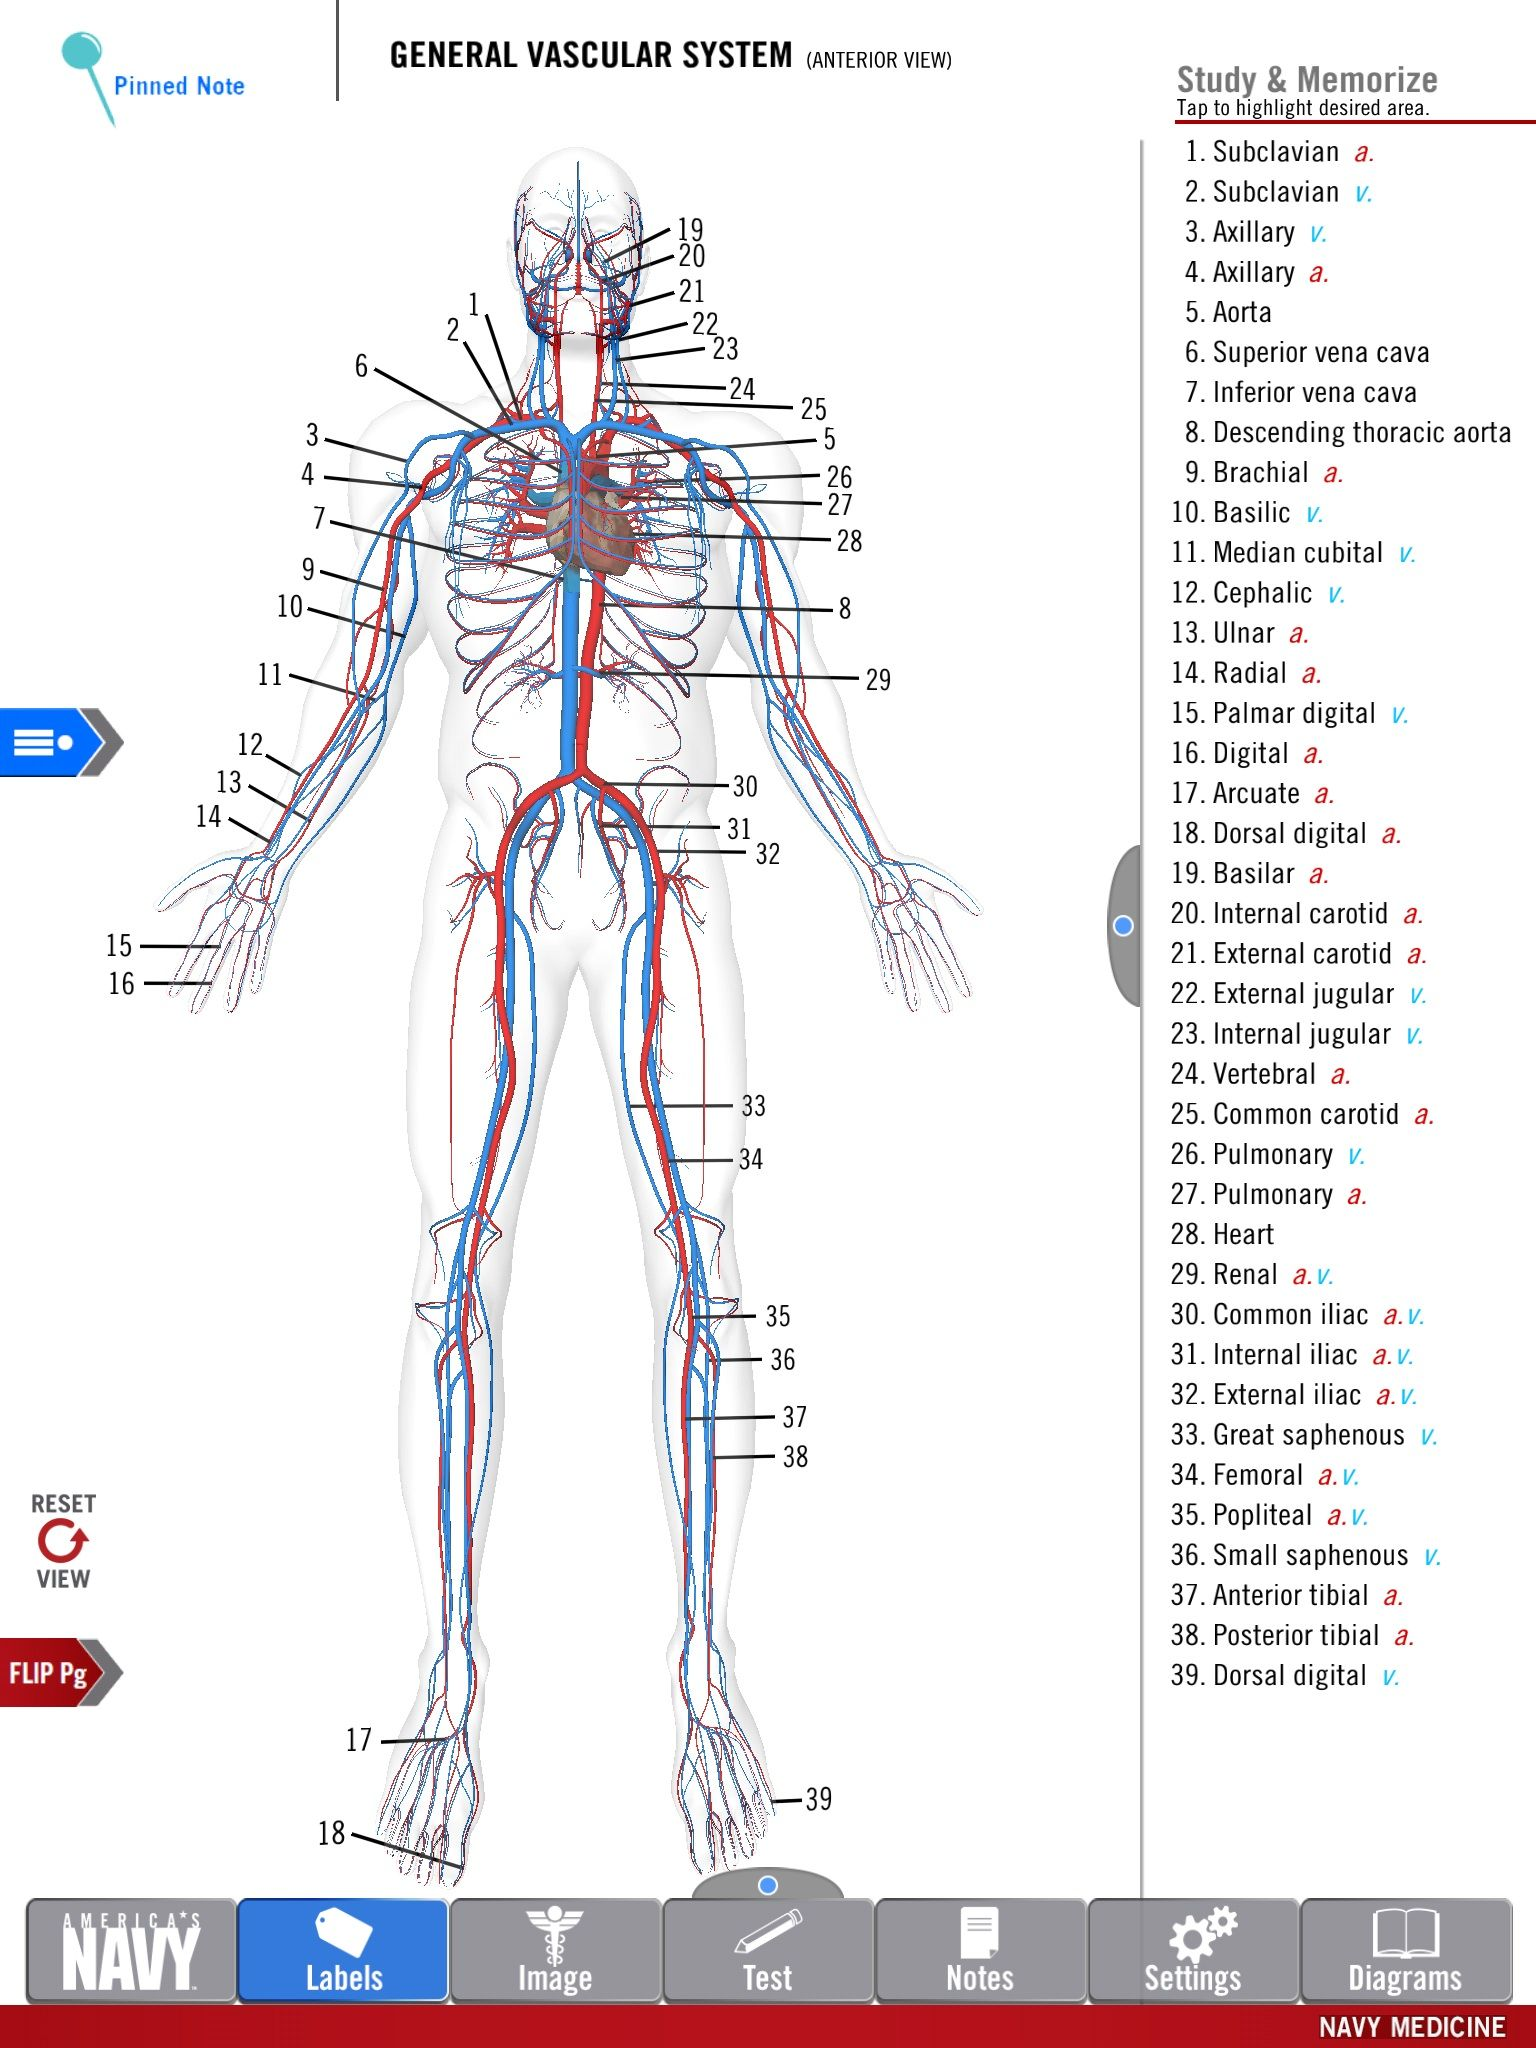 Diagram Of The General Vascular System From The Free